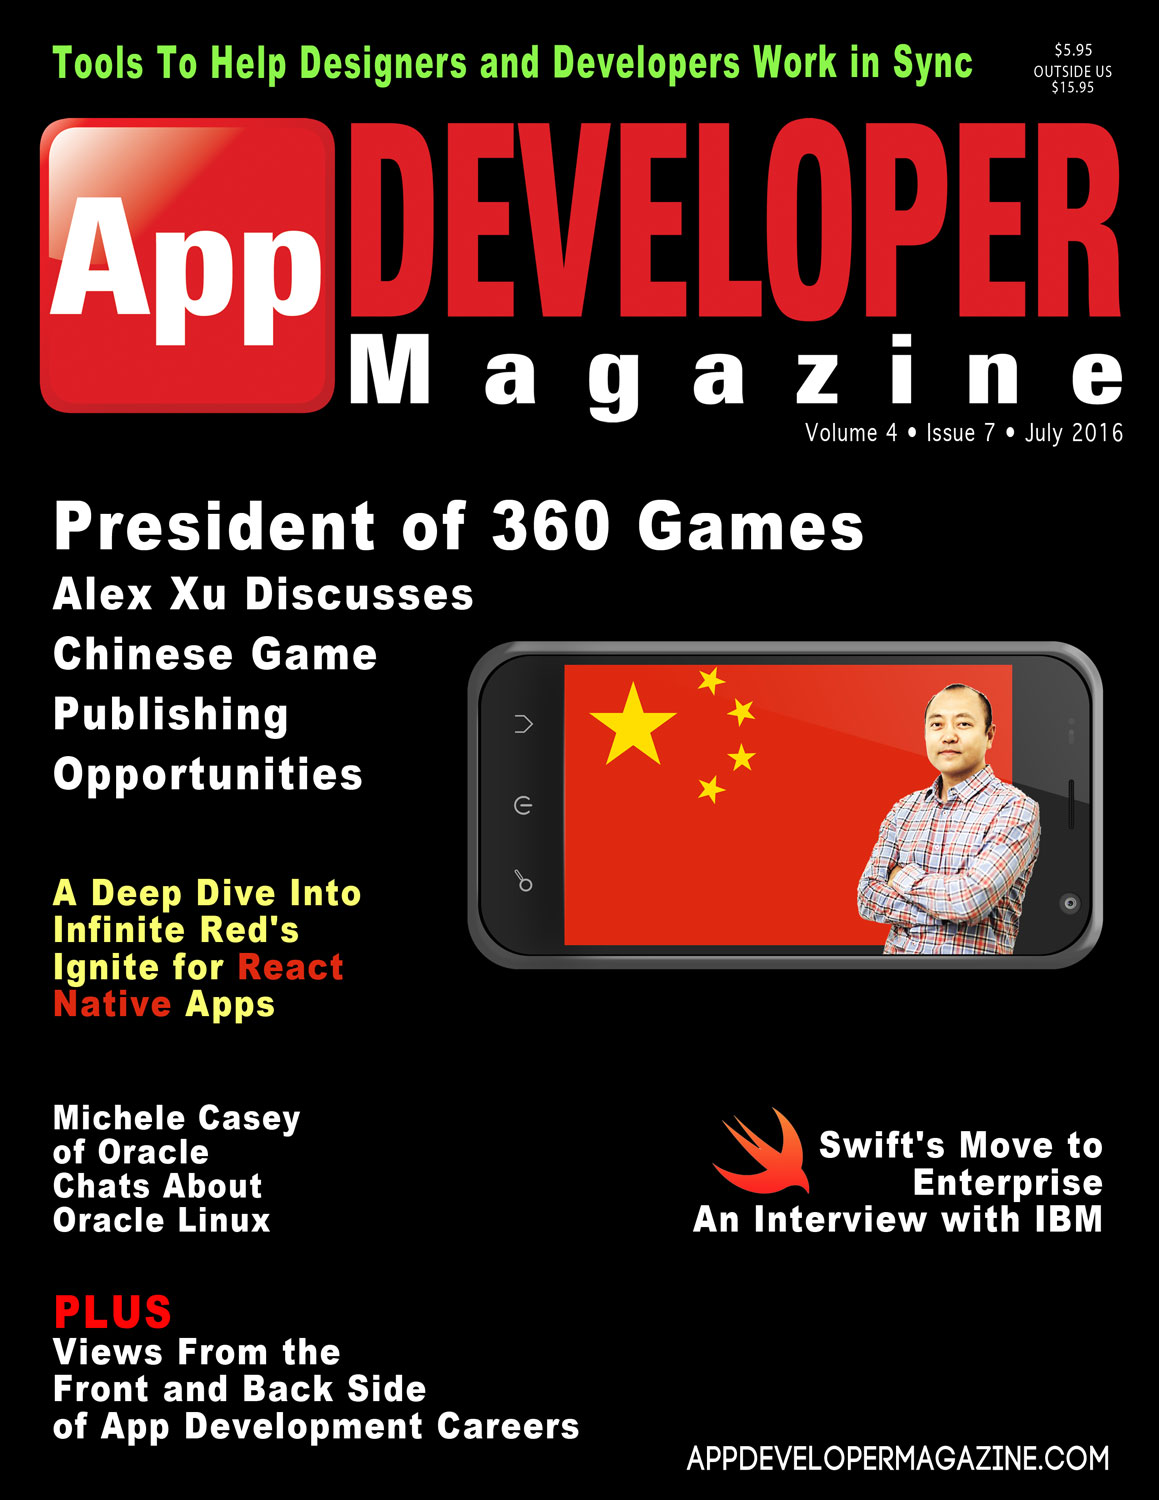 App Developer Magazine July 2016